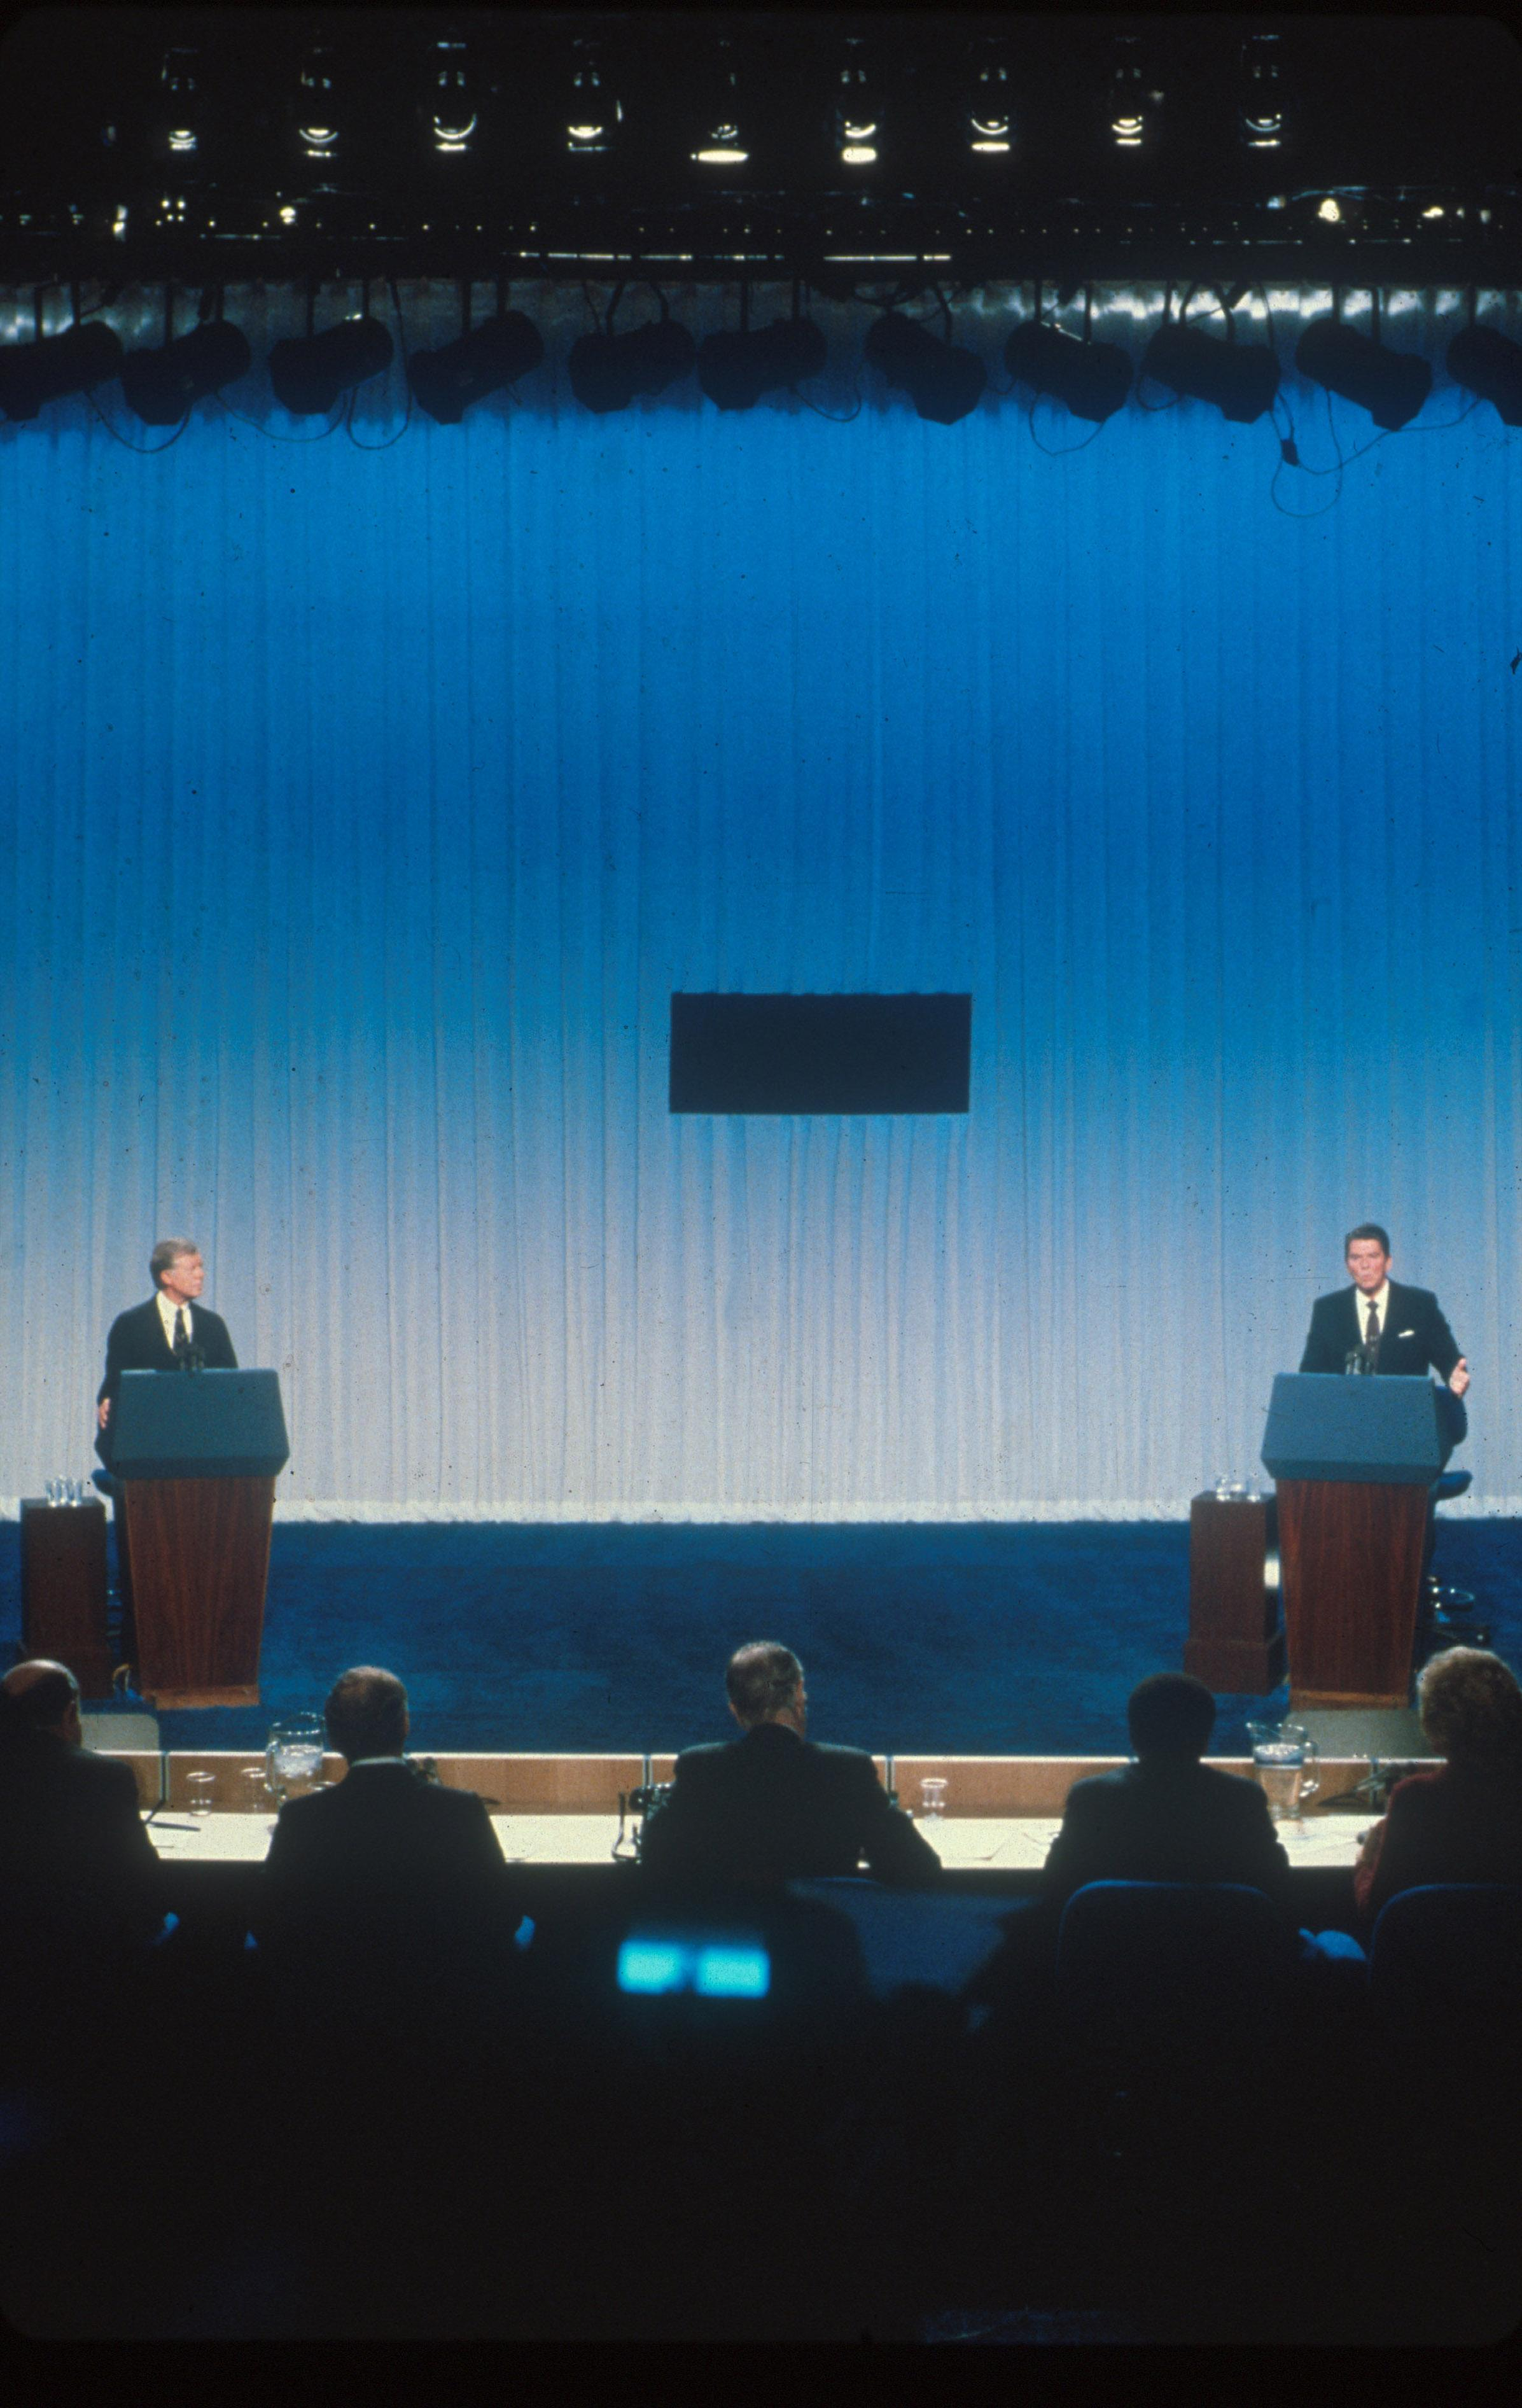 immy Carter and Ronald Reagan debate each other